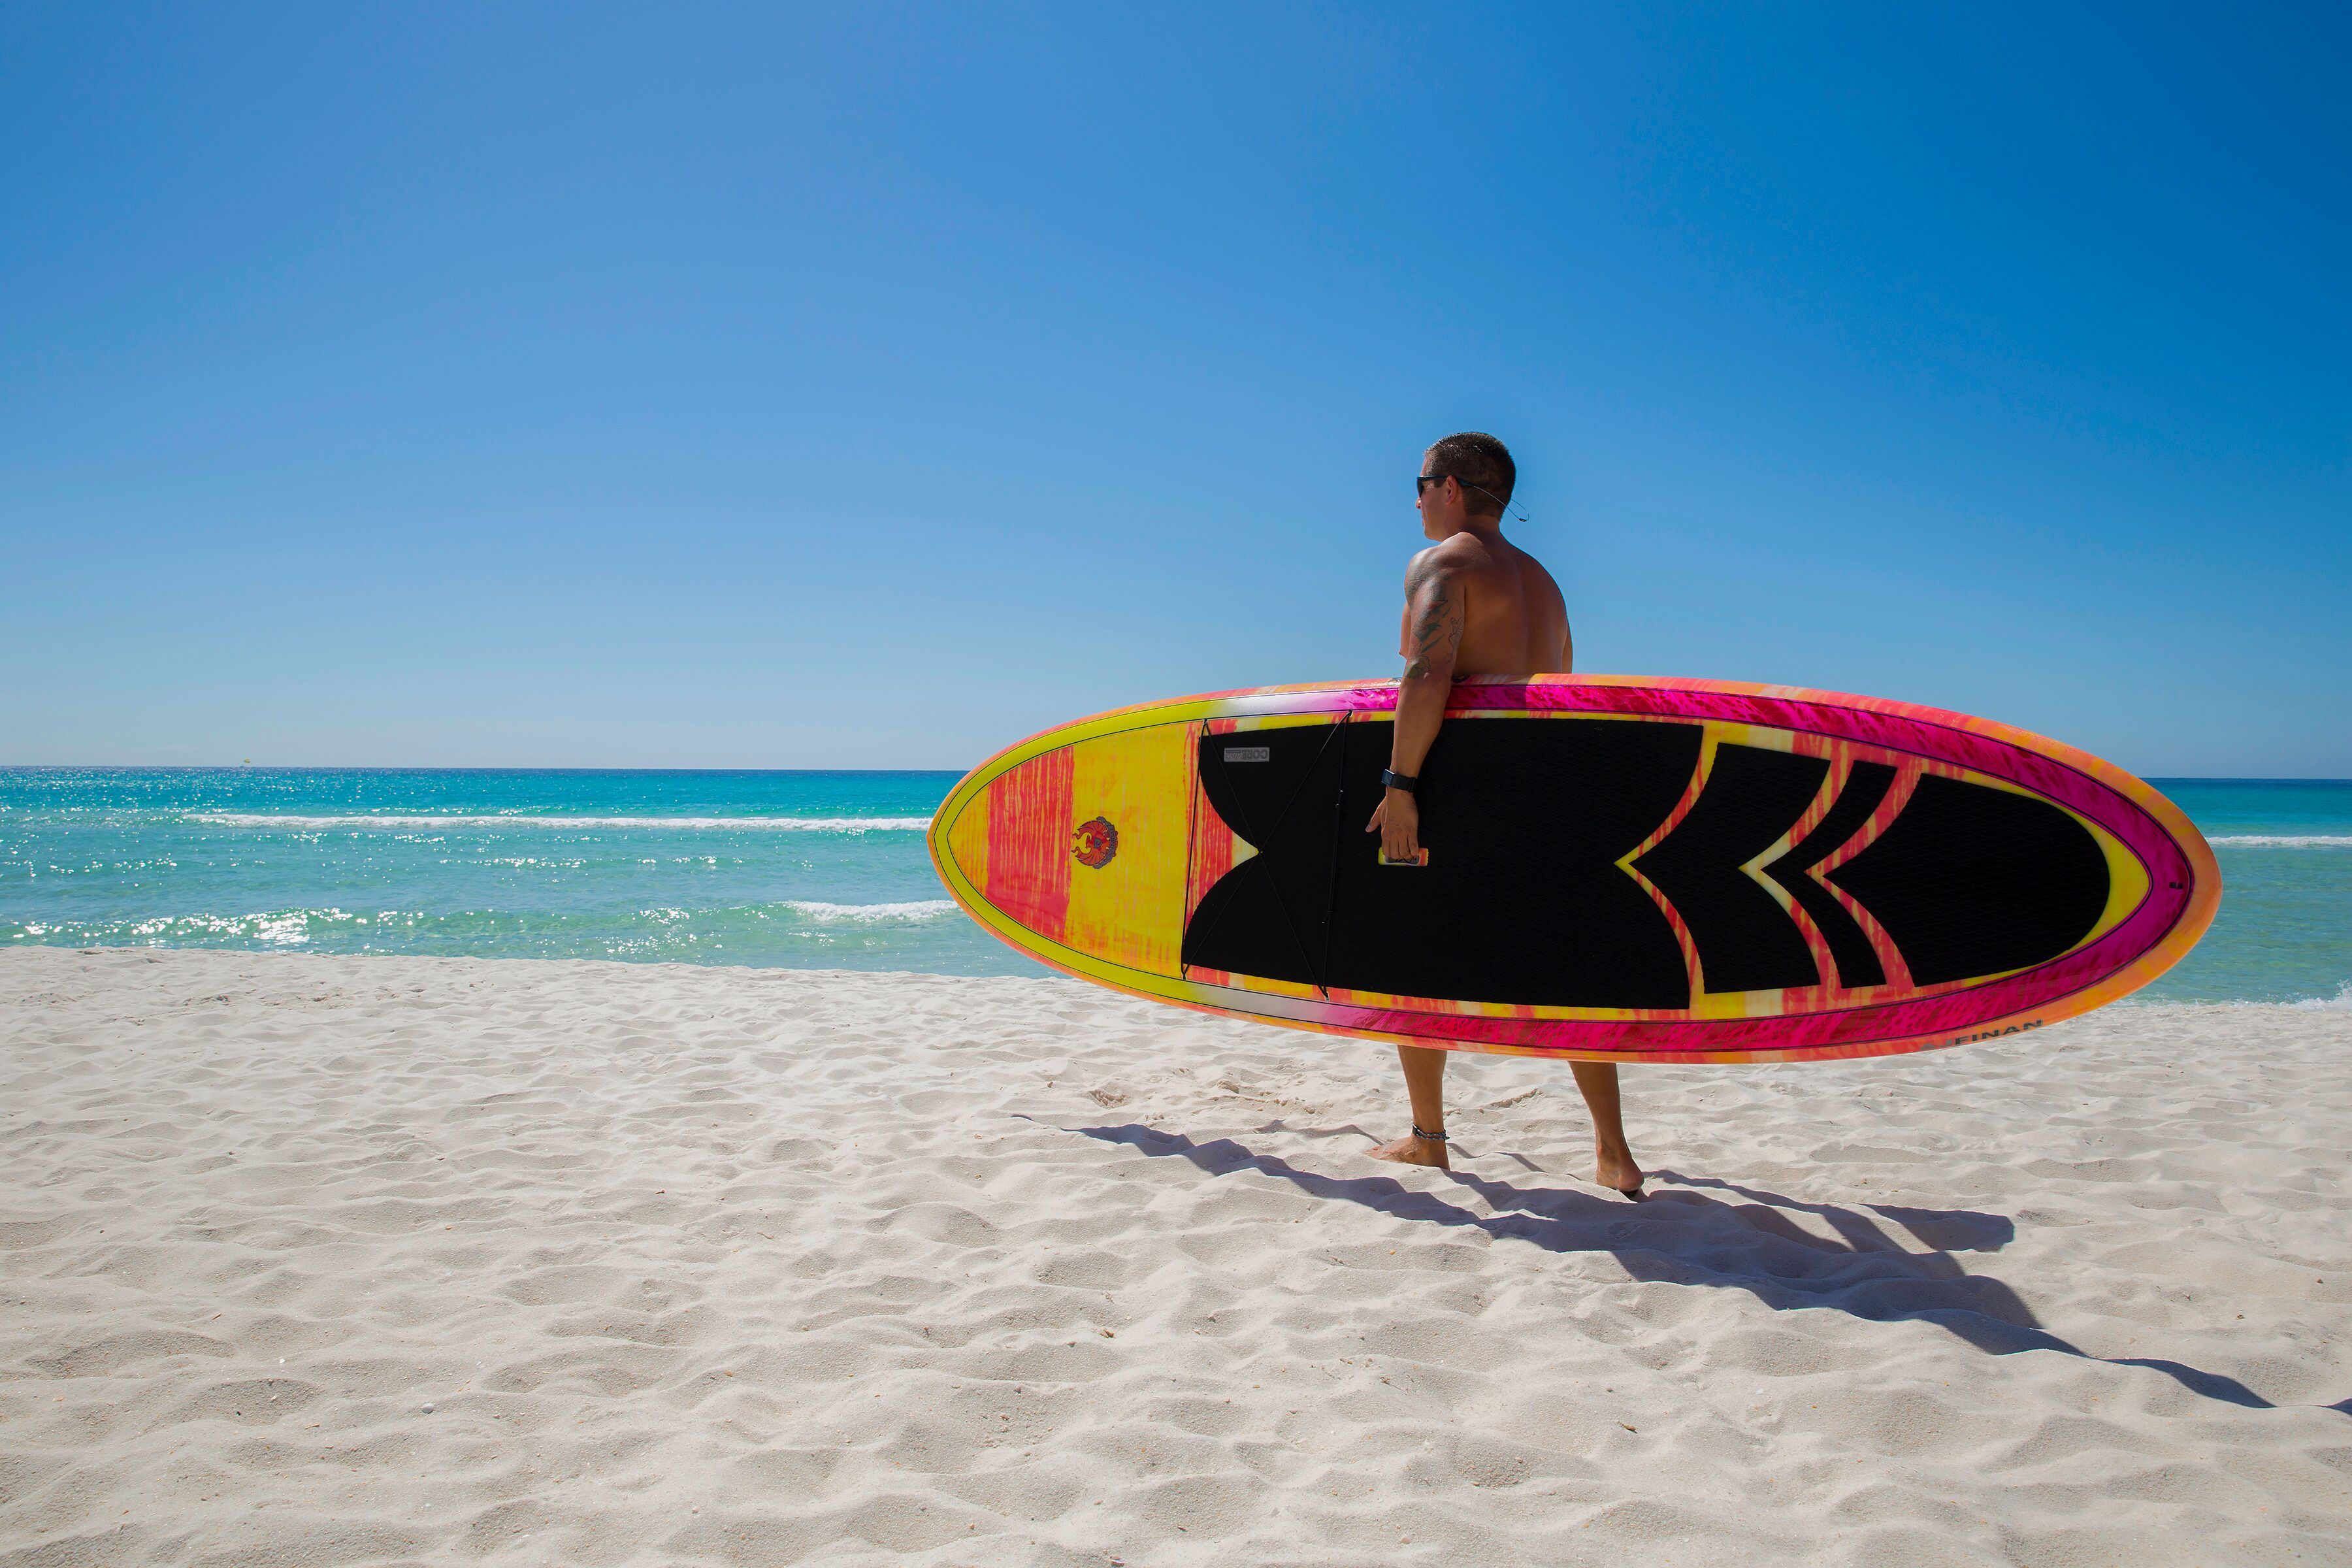 Panama City Beach City Council repeals all restrictions on beach access, commerce